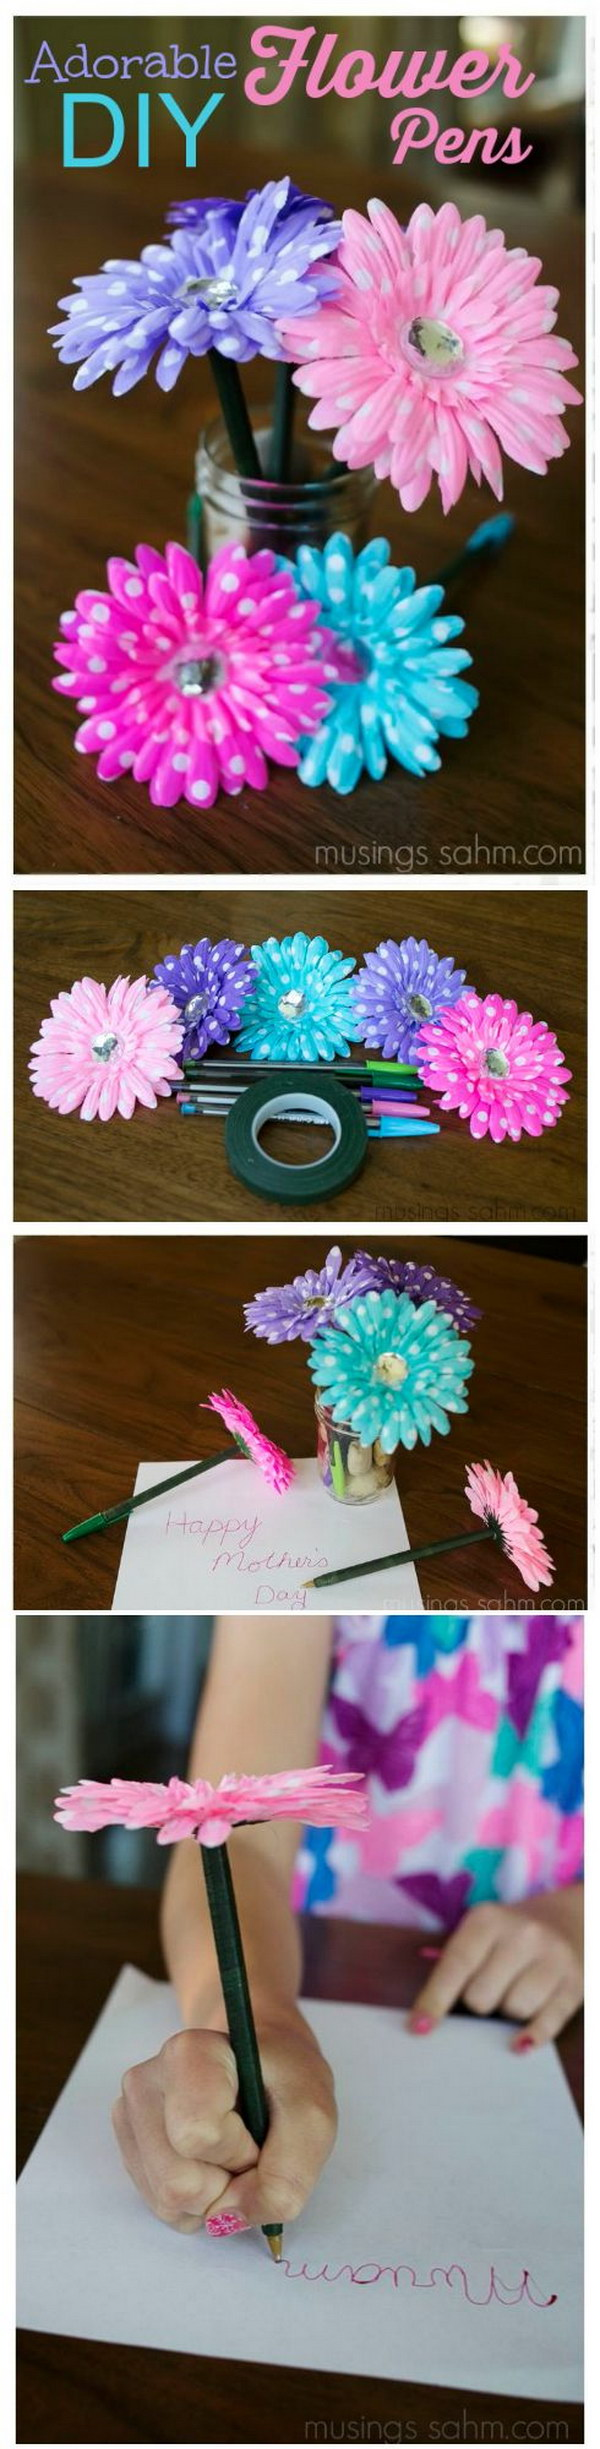 DIY Flower Pens For Mom